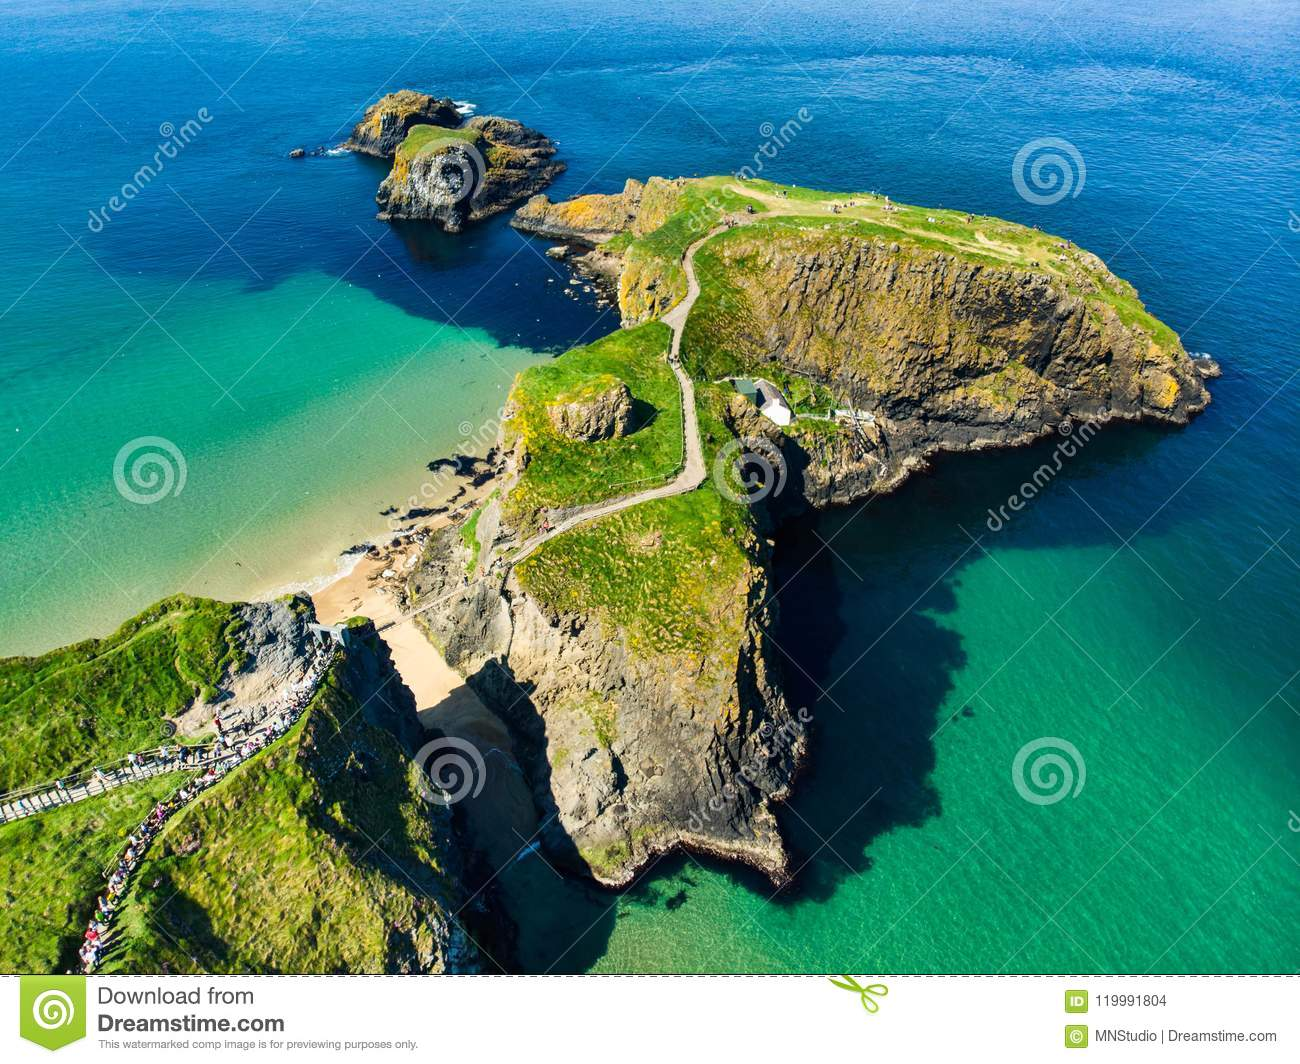 Carrick-a-Rede Rope Bridge, famous rope bridge near Ballintoy in County Antrim, linking the mainland to the tiny island of Carrick